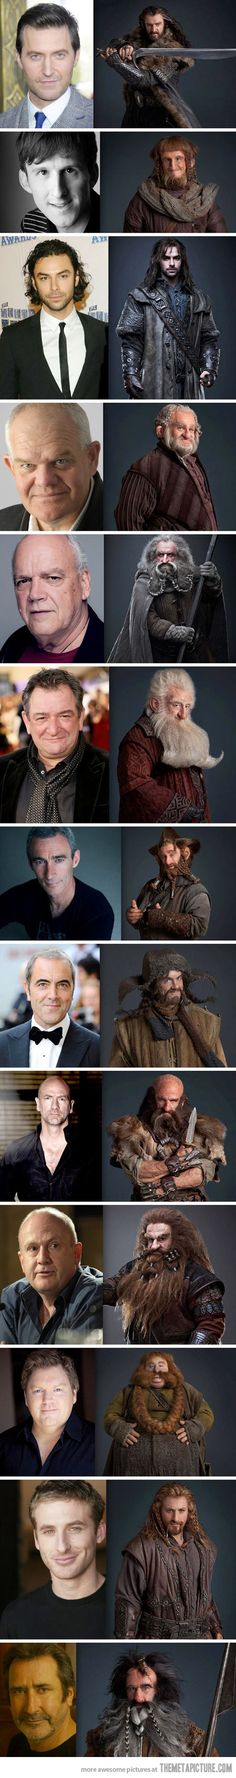 Great story, great movie . . . Can't wait for the next installment! The Hobbit dwarfs, pre and post make-up… amazing! How do you cast for a movie like this?! They changed their faces almost beyond recognition!